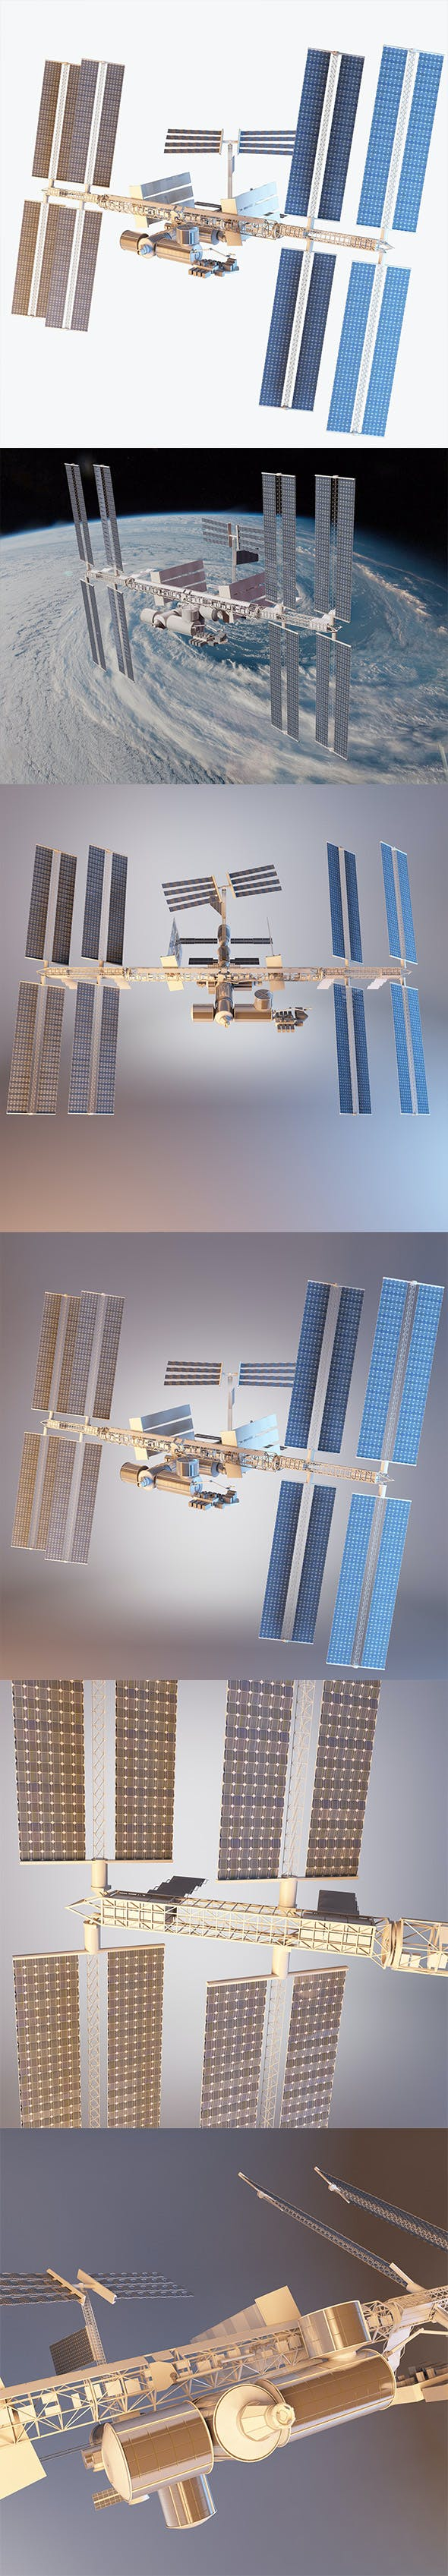 International Space Station With RIG - 3DOcean Item for Sale